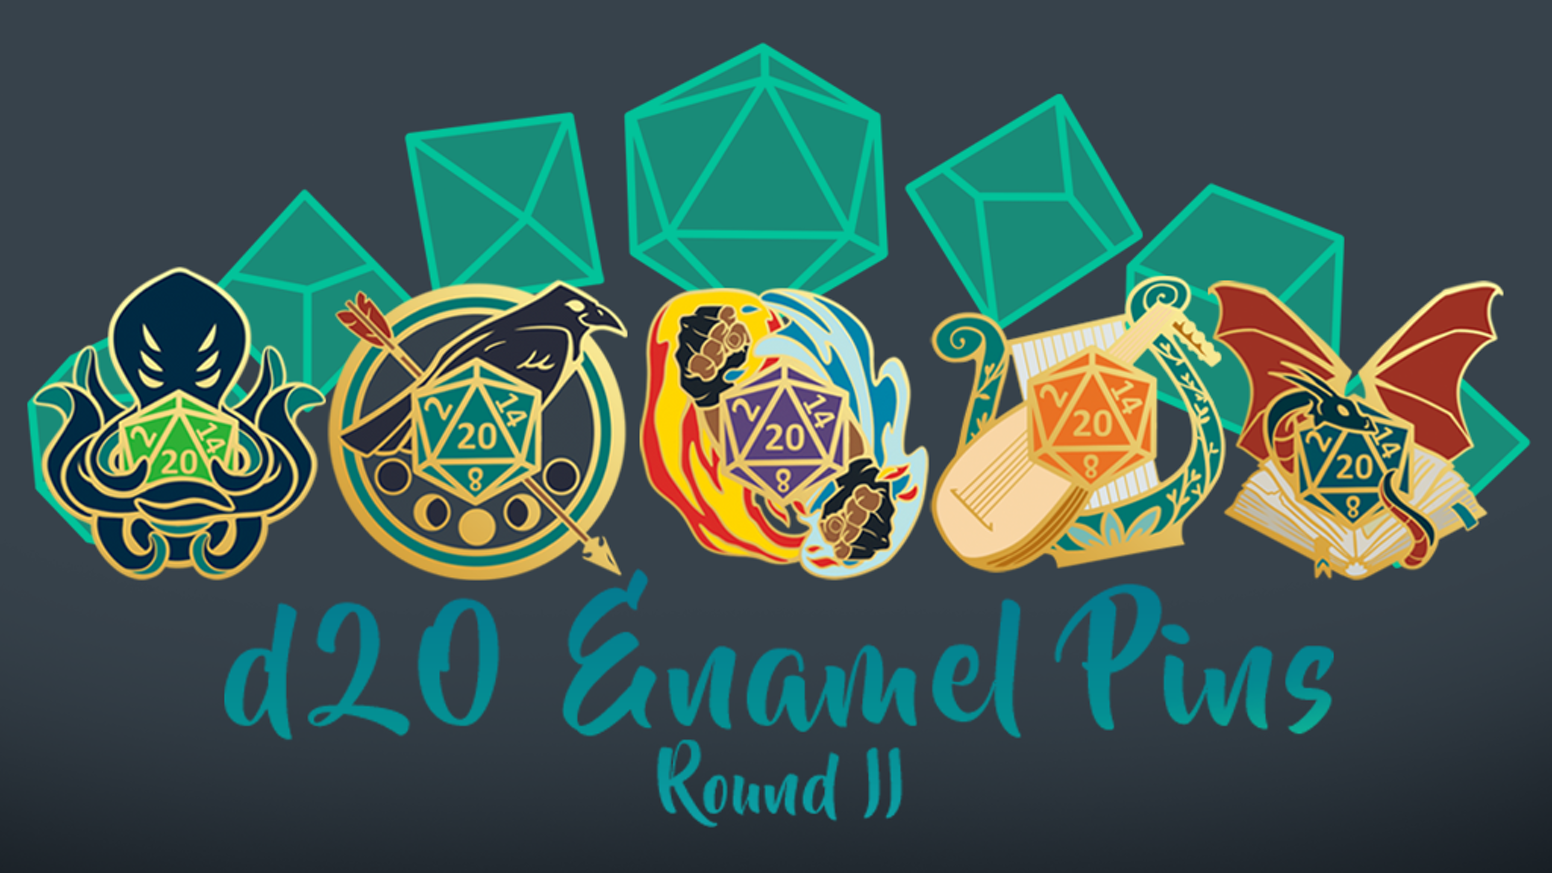 D20 Hard Enamel Pins inspired by classes from Dungeons & Dragons, and other tabletop RPGs.